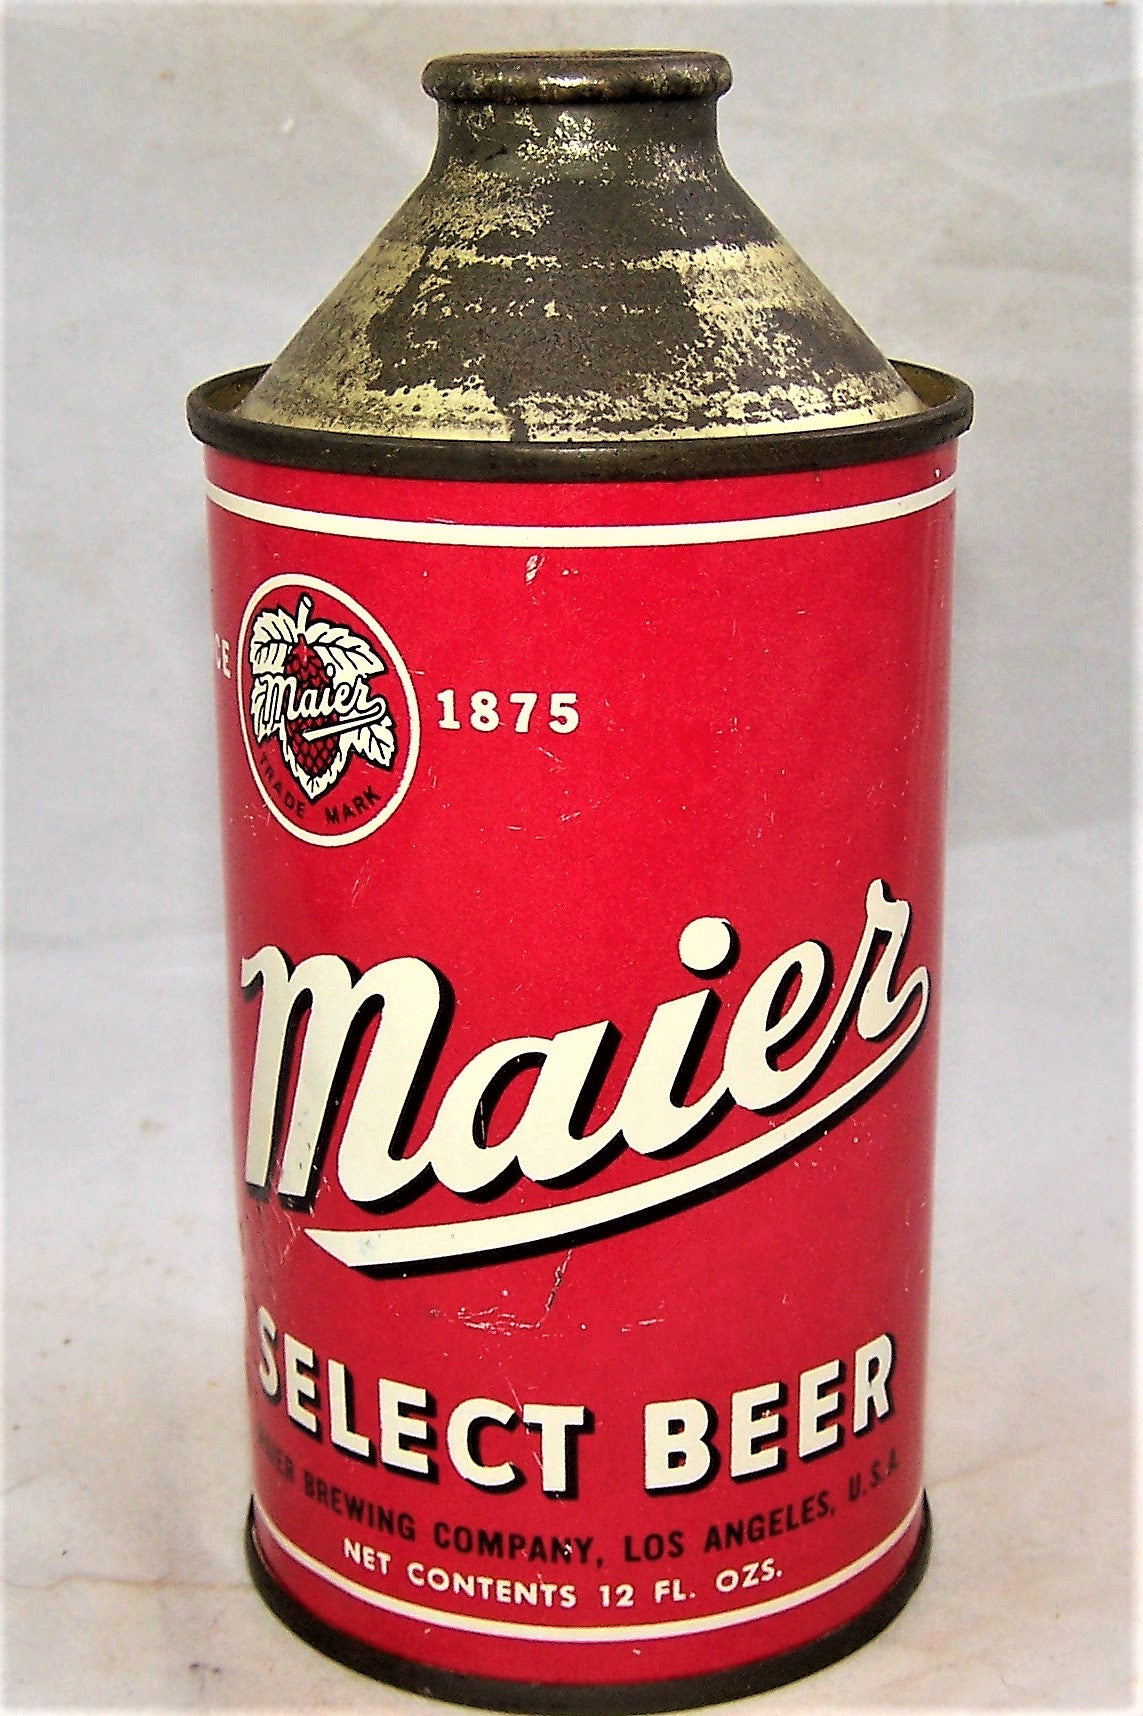 Tough Maier (Black Letters) Select Beer, USBC 173-11, Grade 1/1-